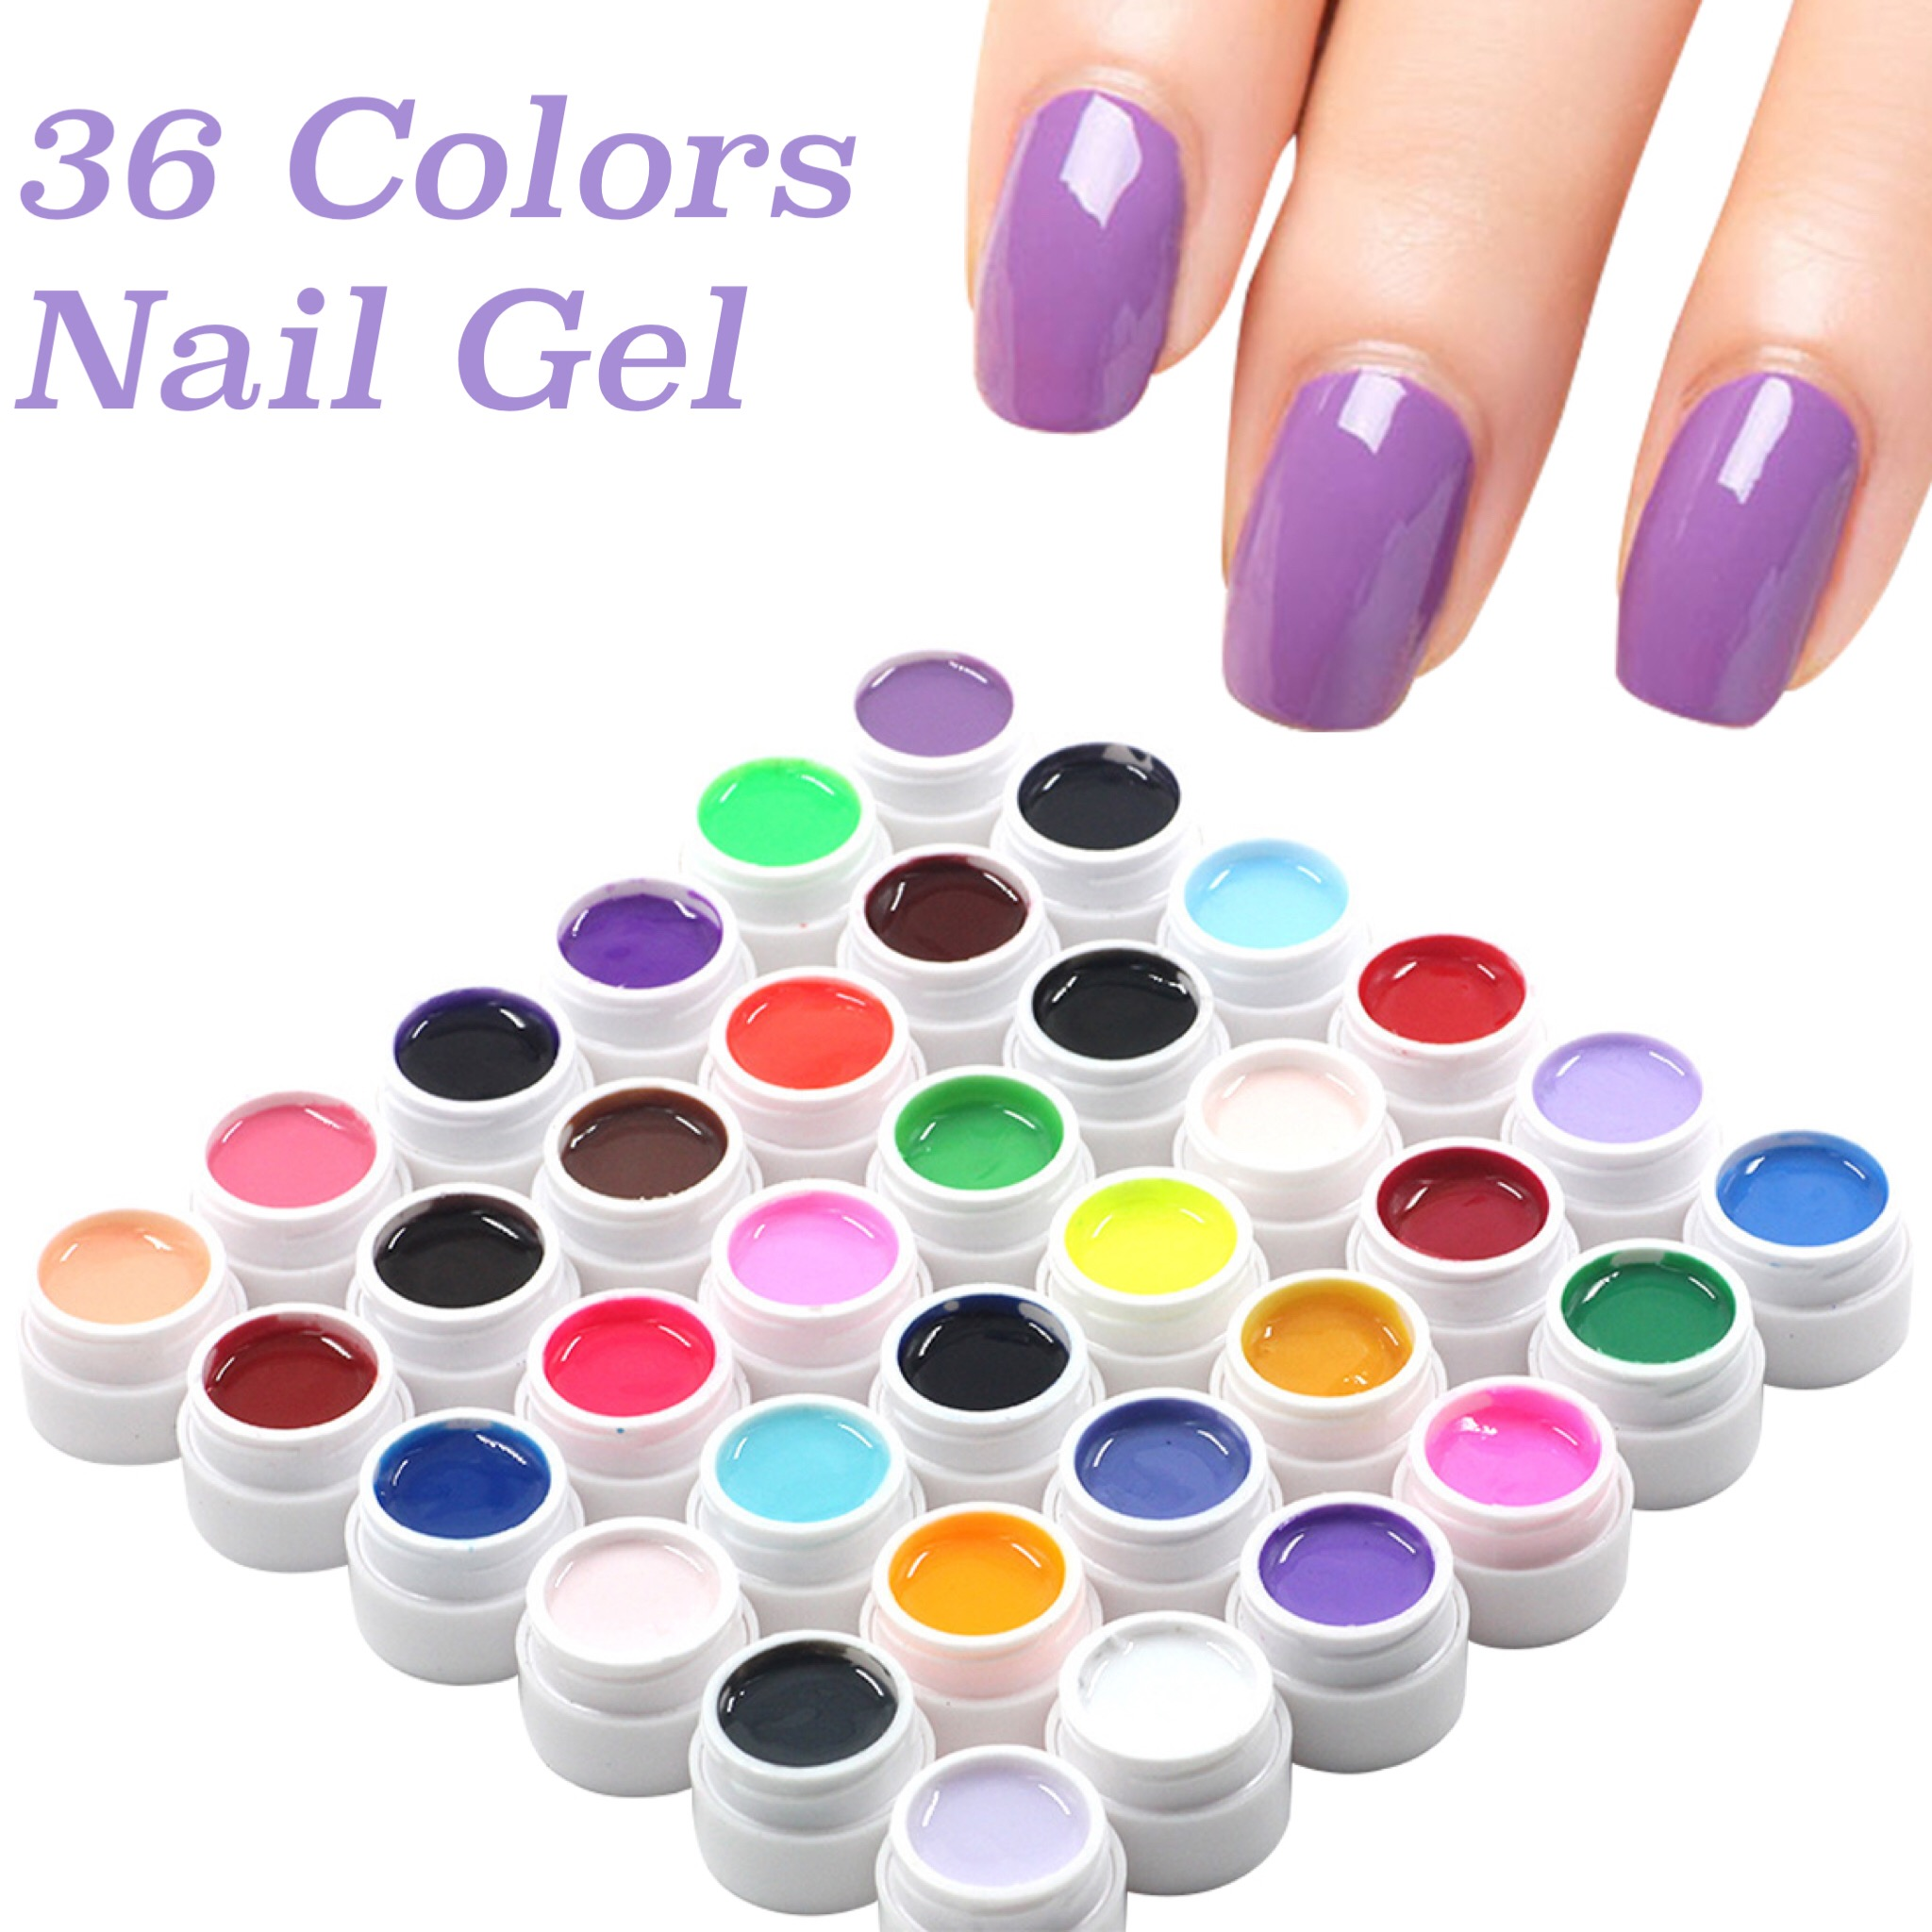 36 Boxes Solid Color Nail Gel Pure Colors UV Gel Shiny Extension Longlasting Nail Art Tips Glue Nail Painting Polish Varnish 120 180 colors professional manicure salon nail art uv gel polish tips card display board book chart palette 3 colors